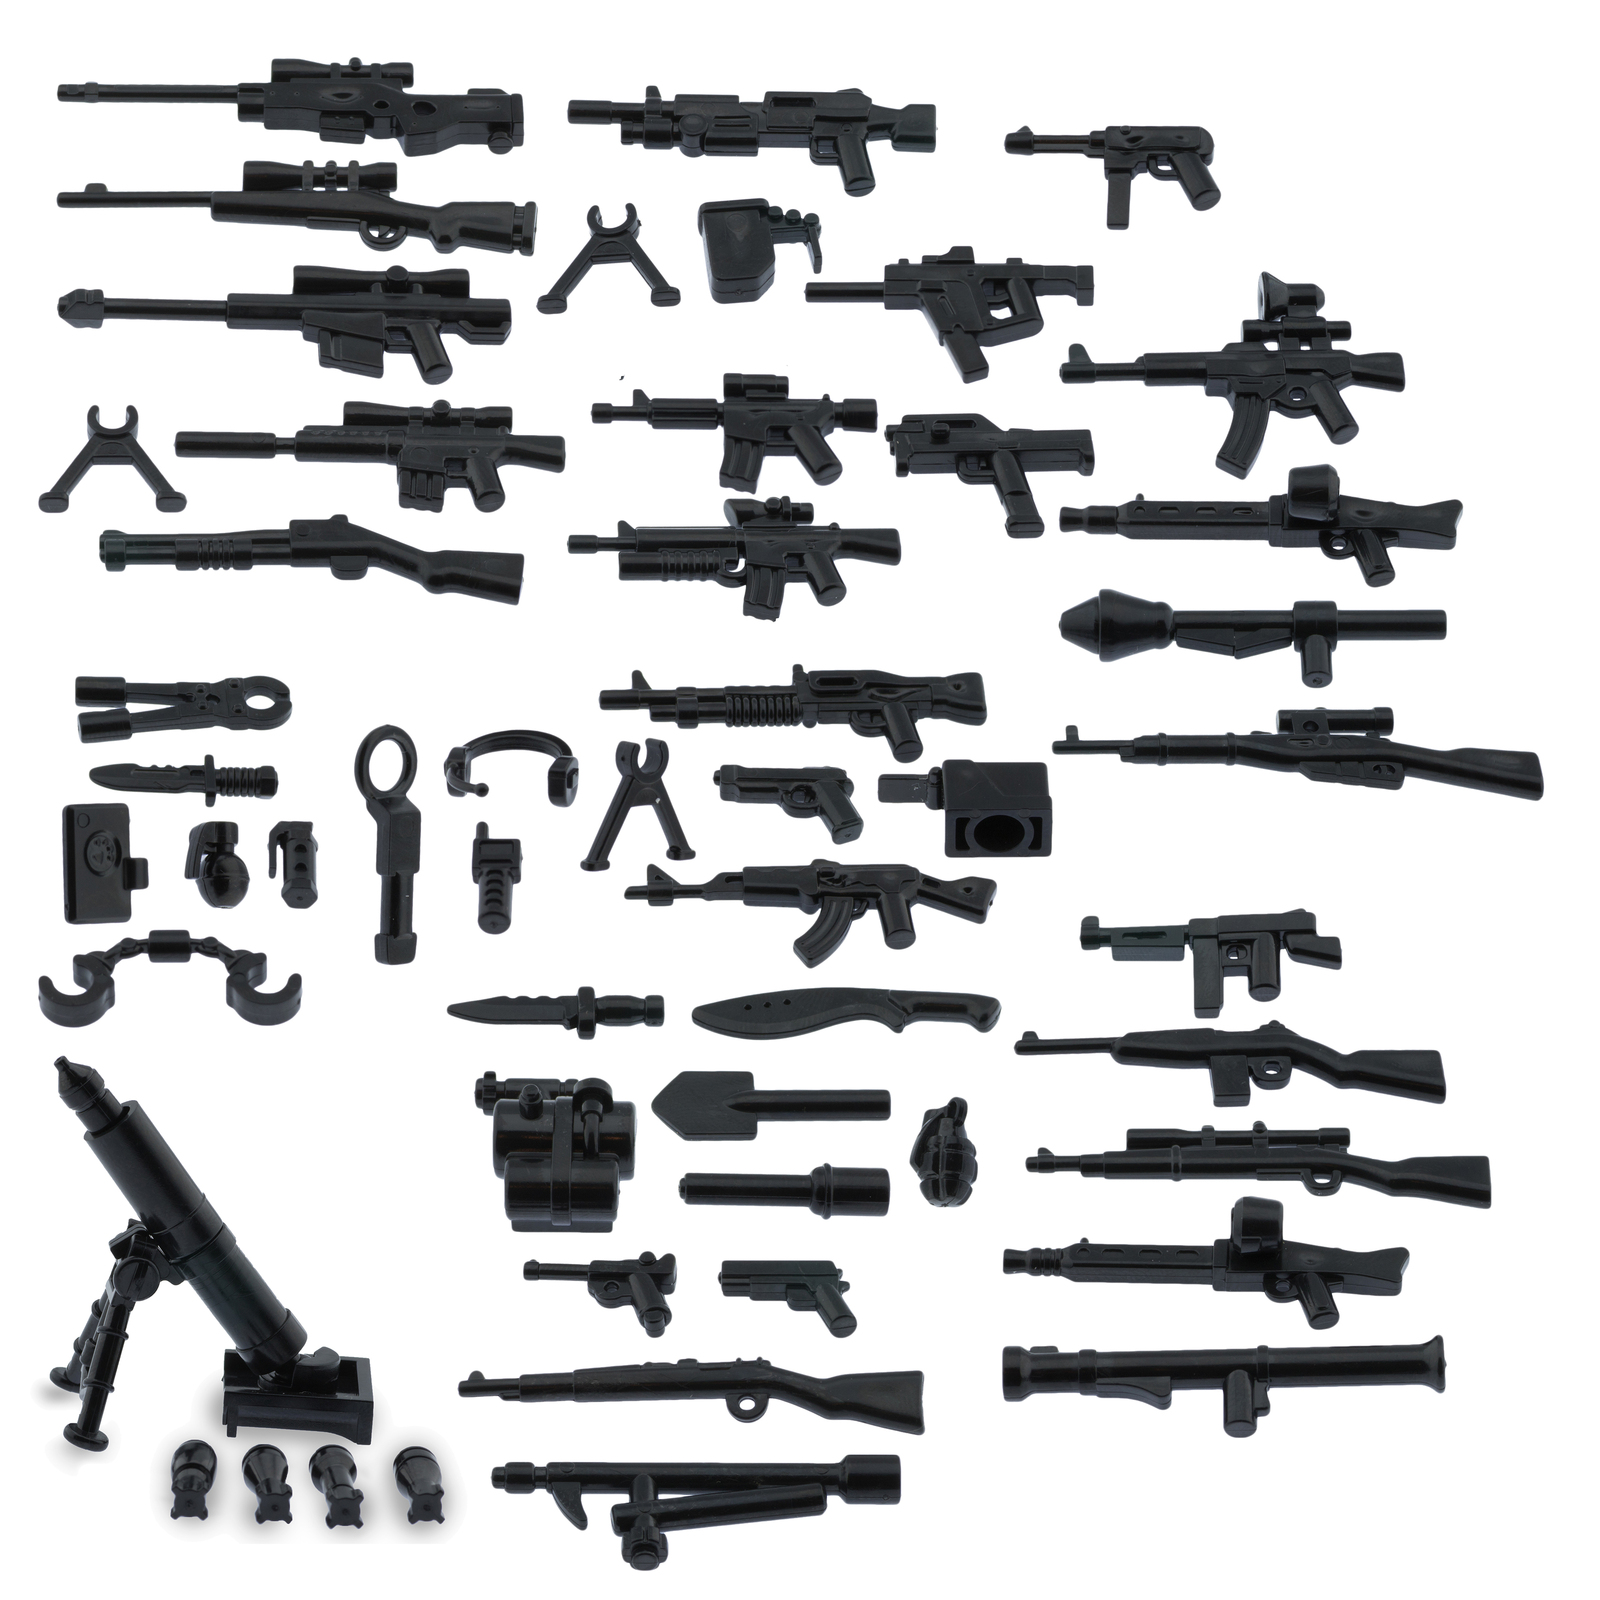 My military guns weapons pack for lego minifigures minifig accessories set a and b  weapons pack